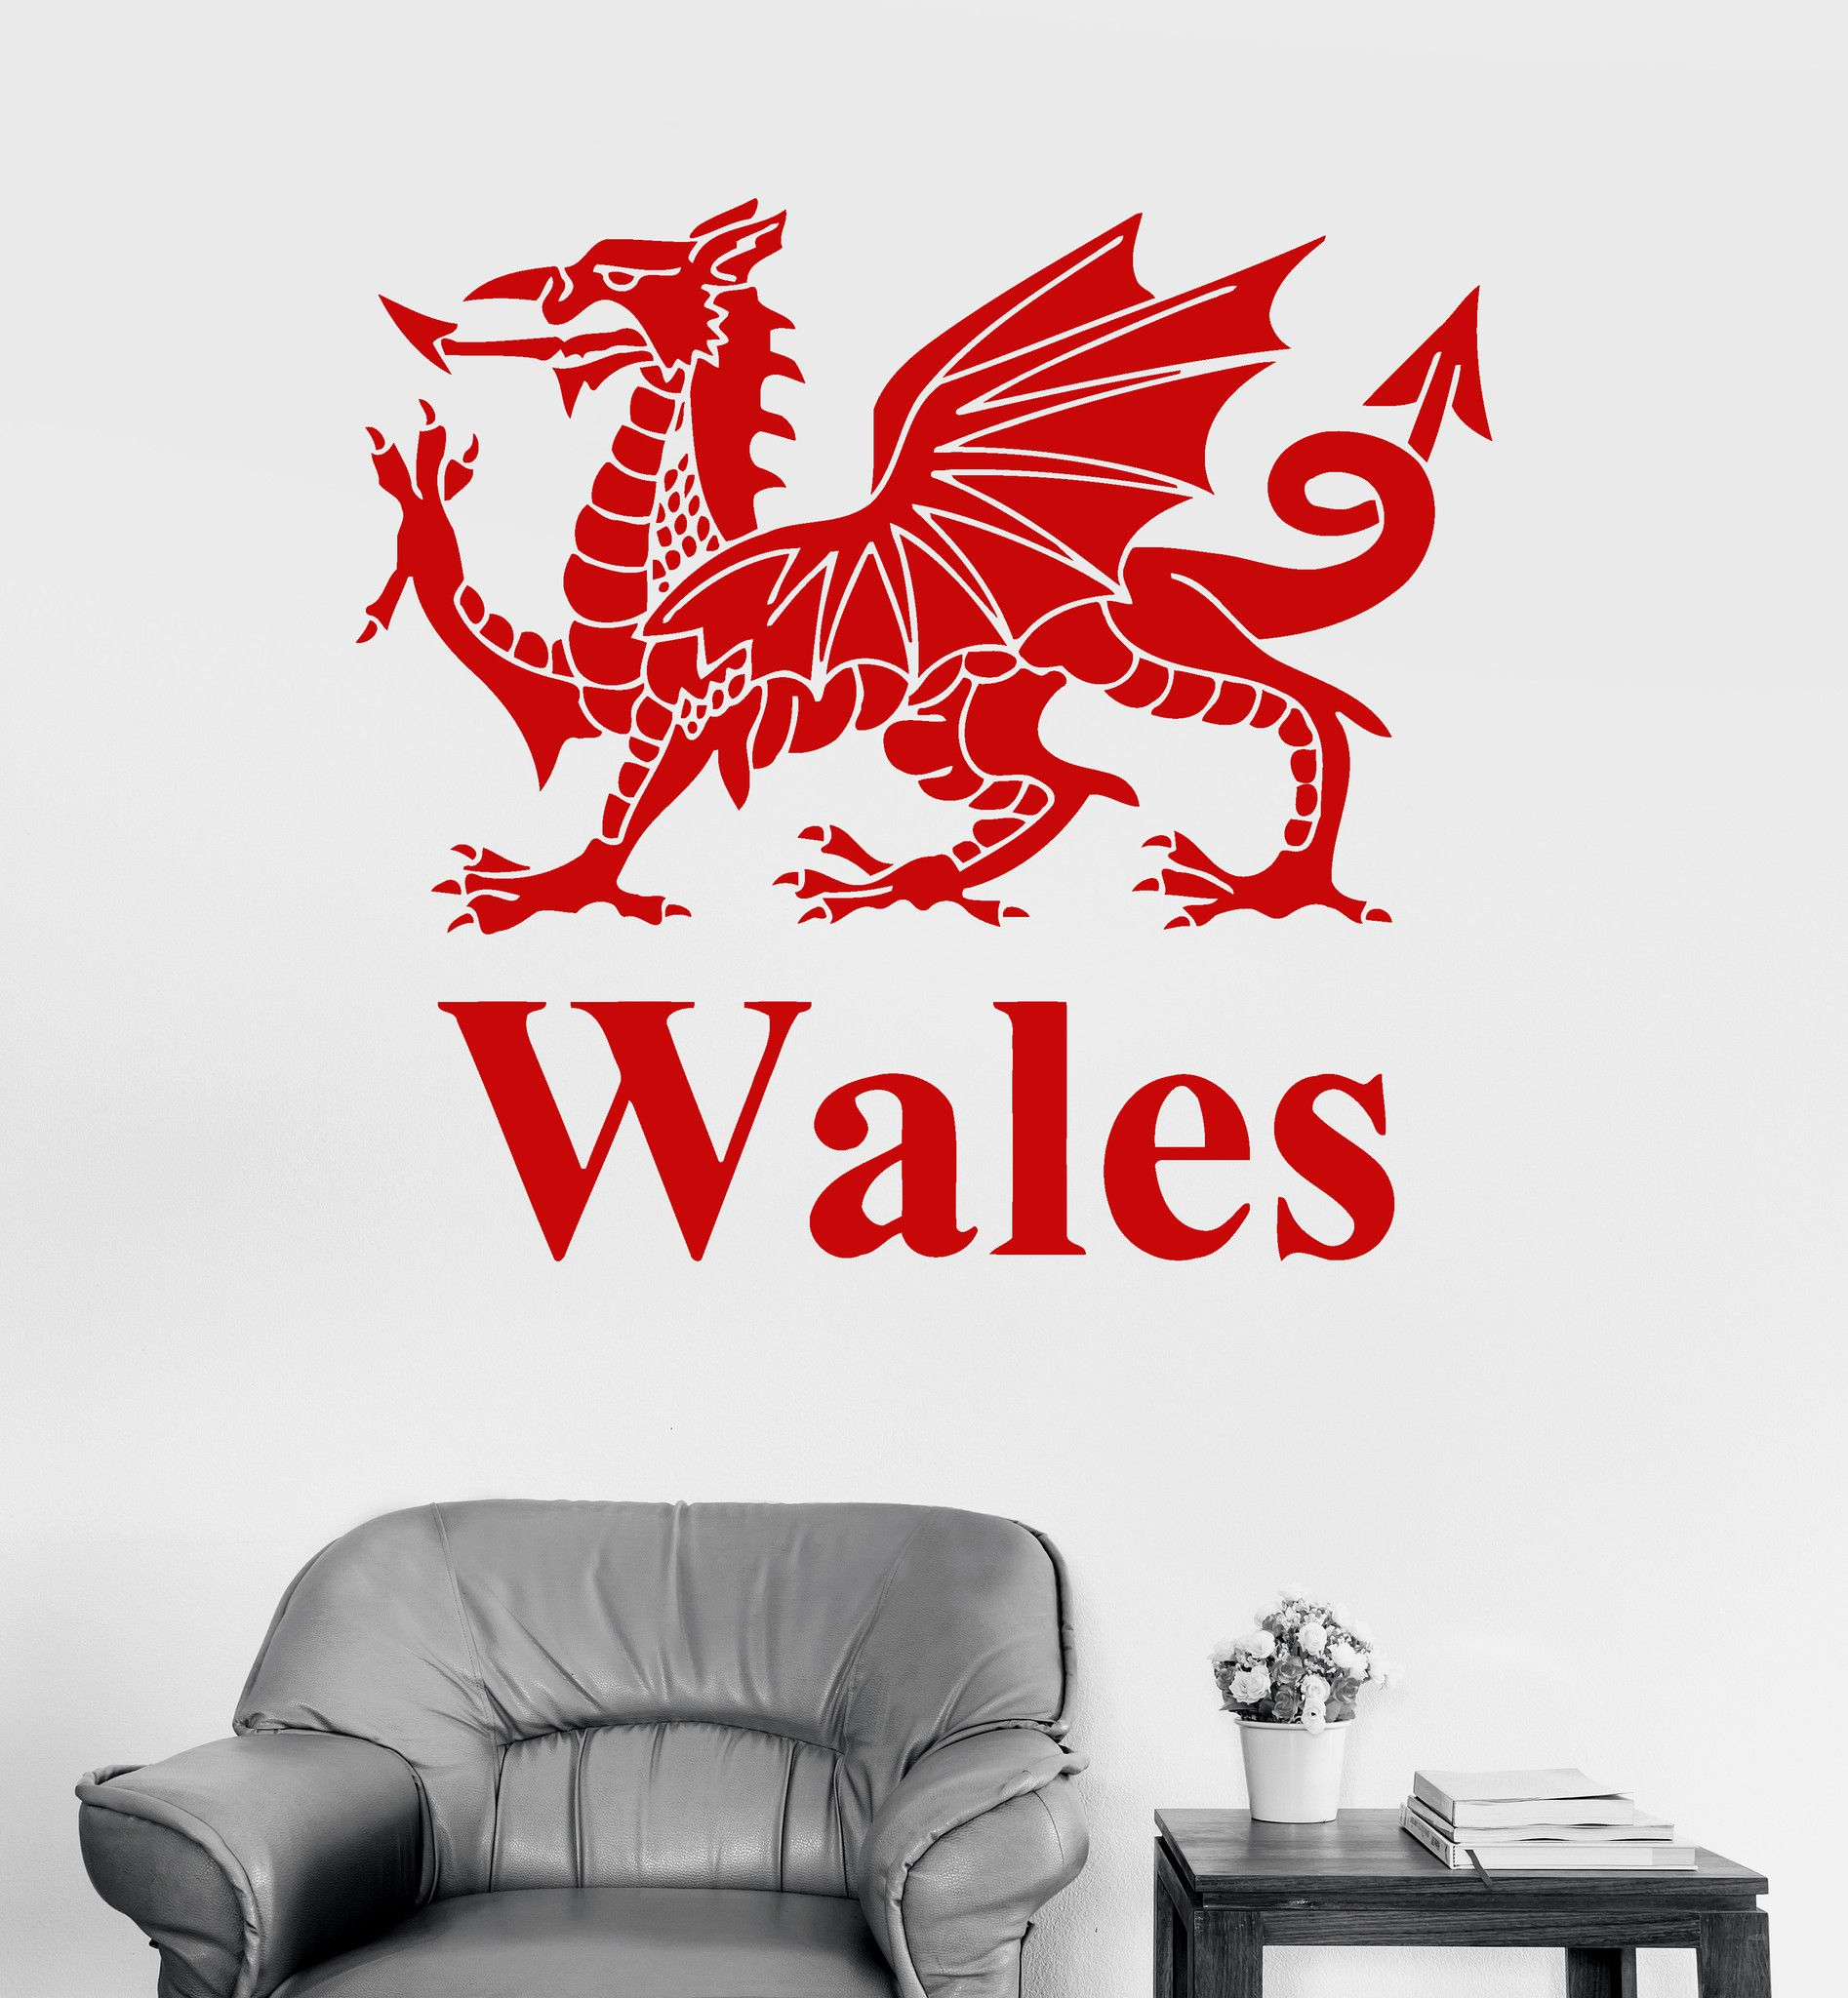 Vinyl Wall Decal Principality Of Wales Welsh Dragon Britain Stickers Unique Gift Ig3269 Vinyl Wall Decals Wall Decals Vinyl [ 2048 x 1894 Pixel ]